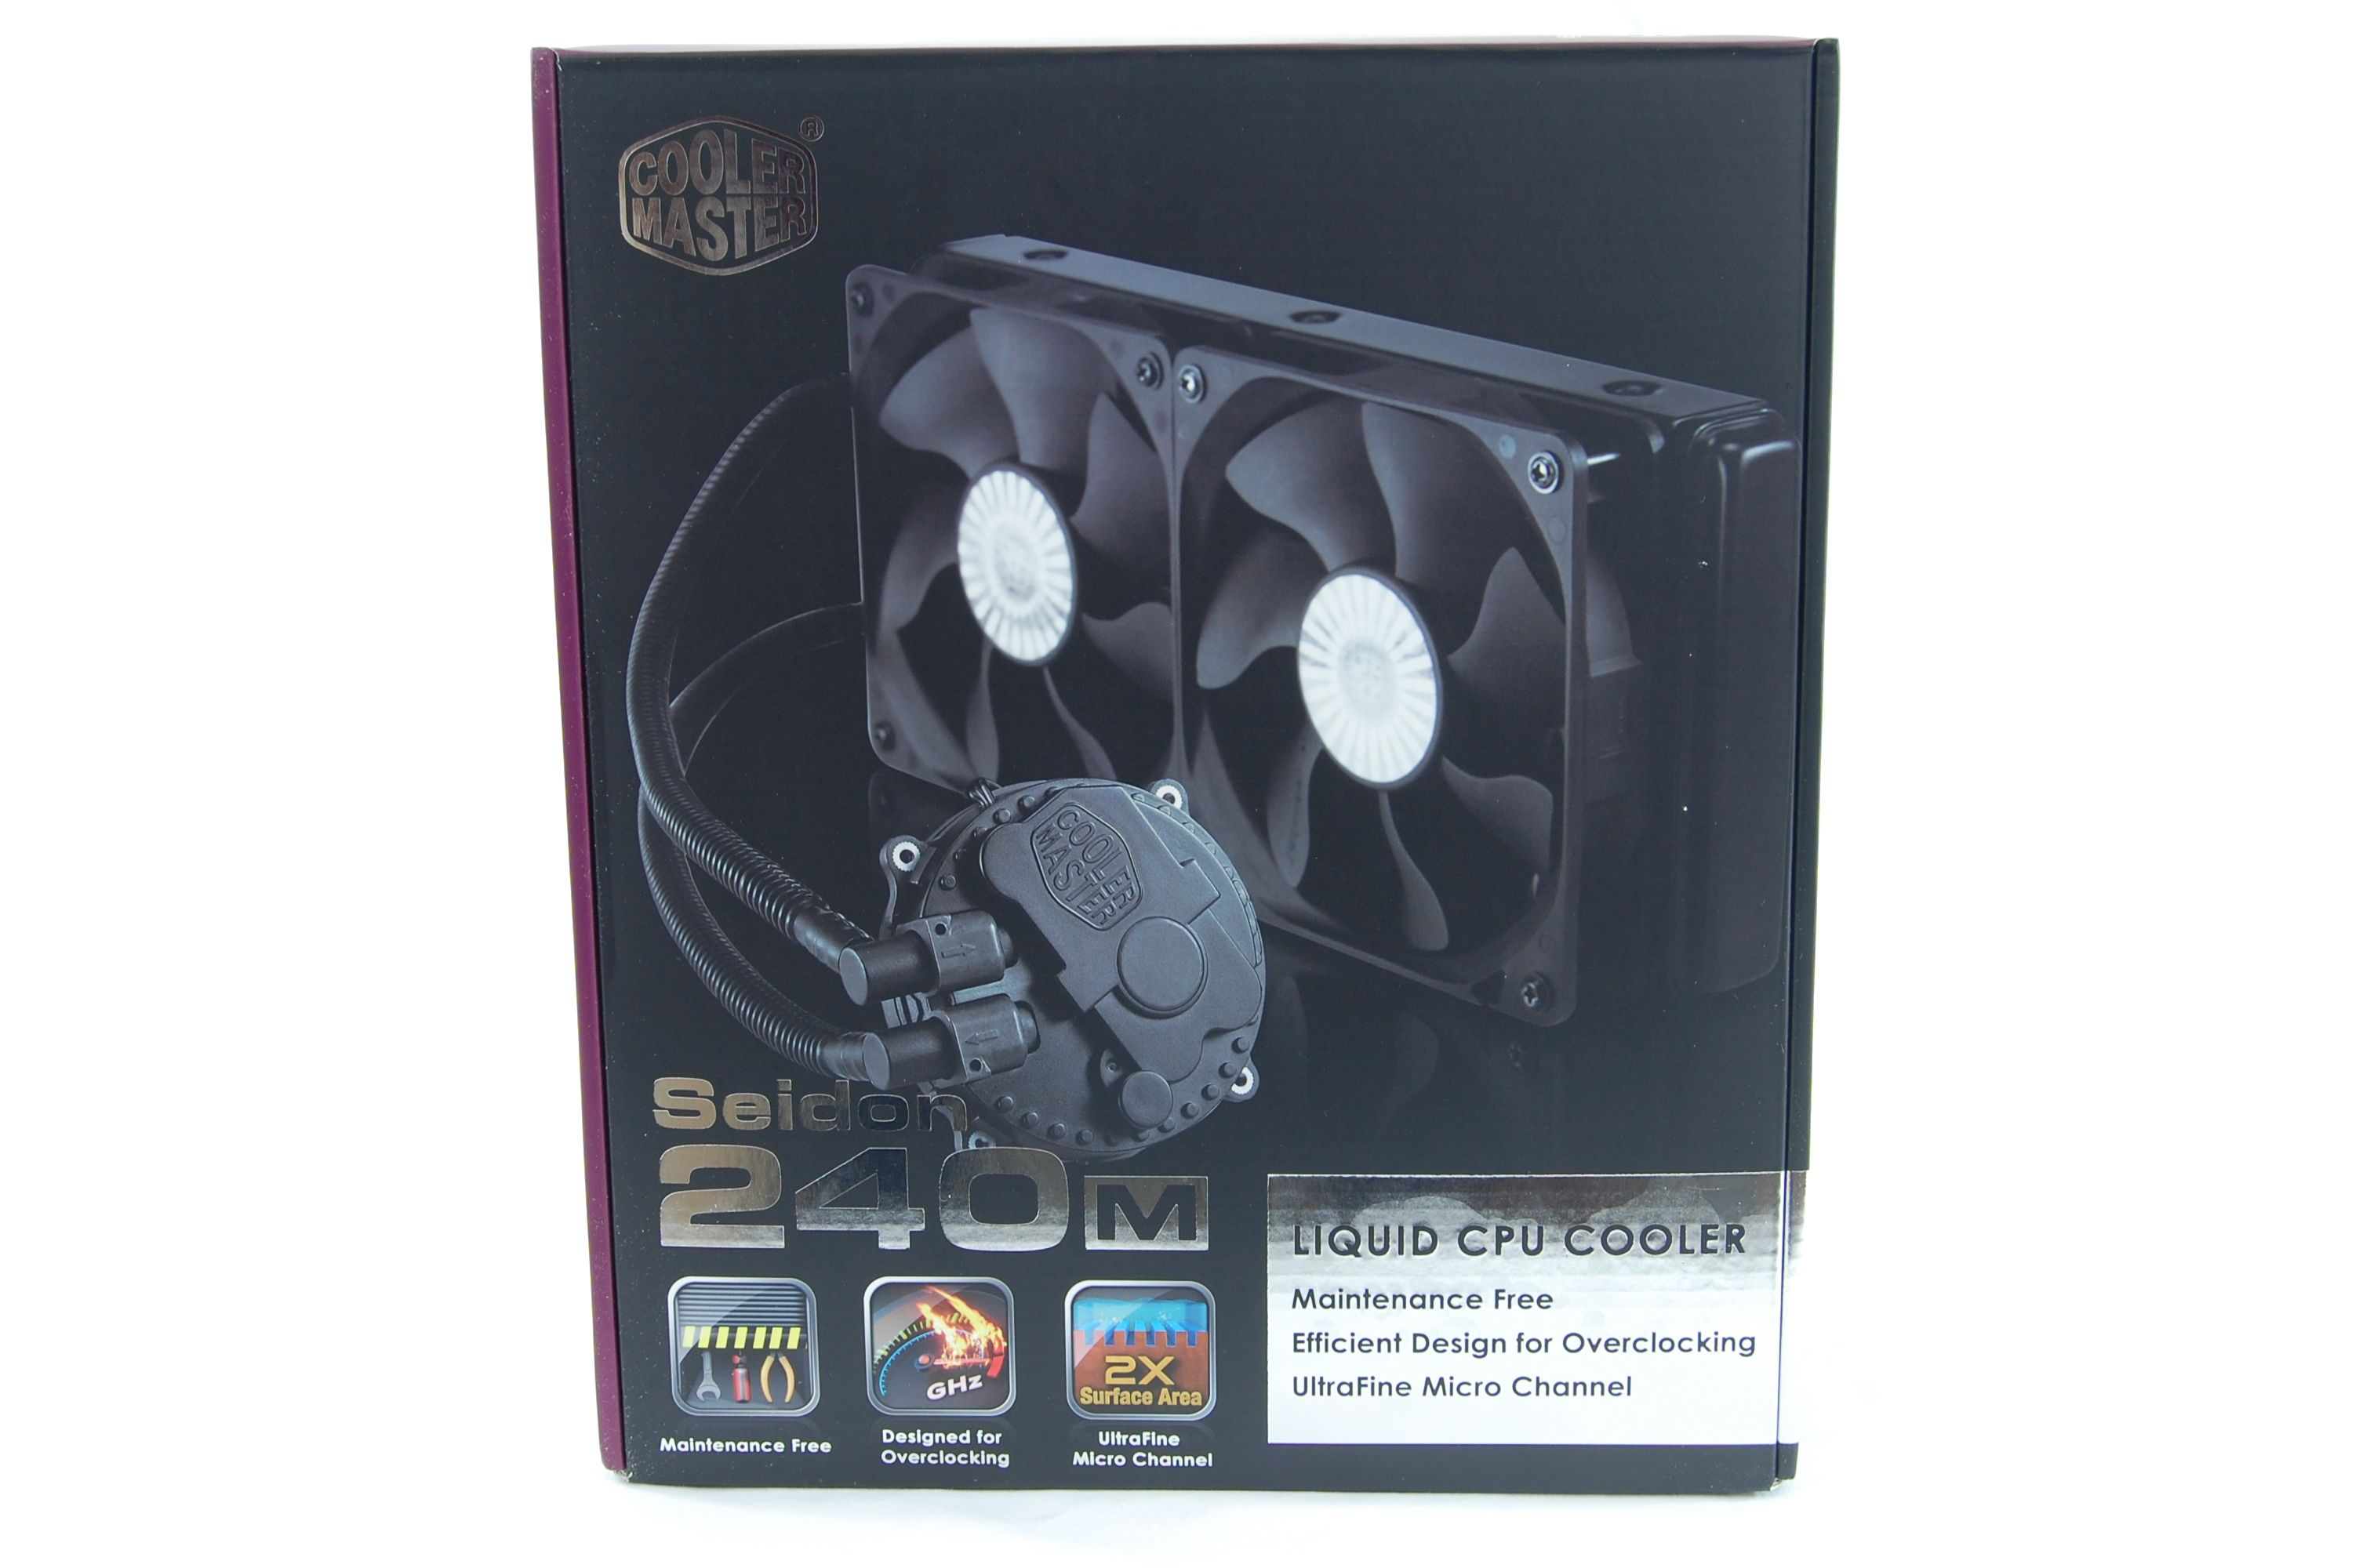 CoolerMaster Seidon 240M All-in-One Liquid CPU Cooler Review - Box